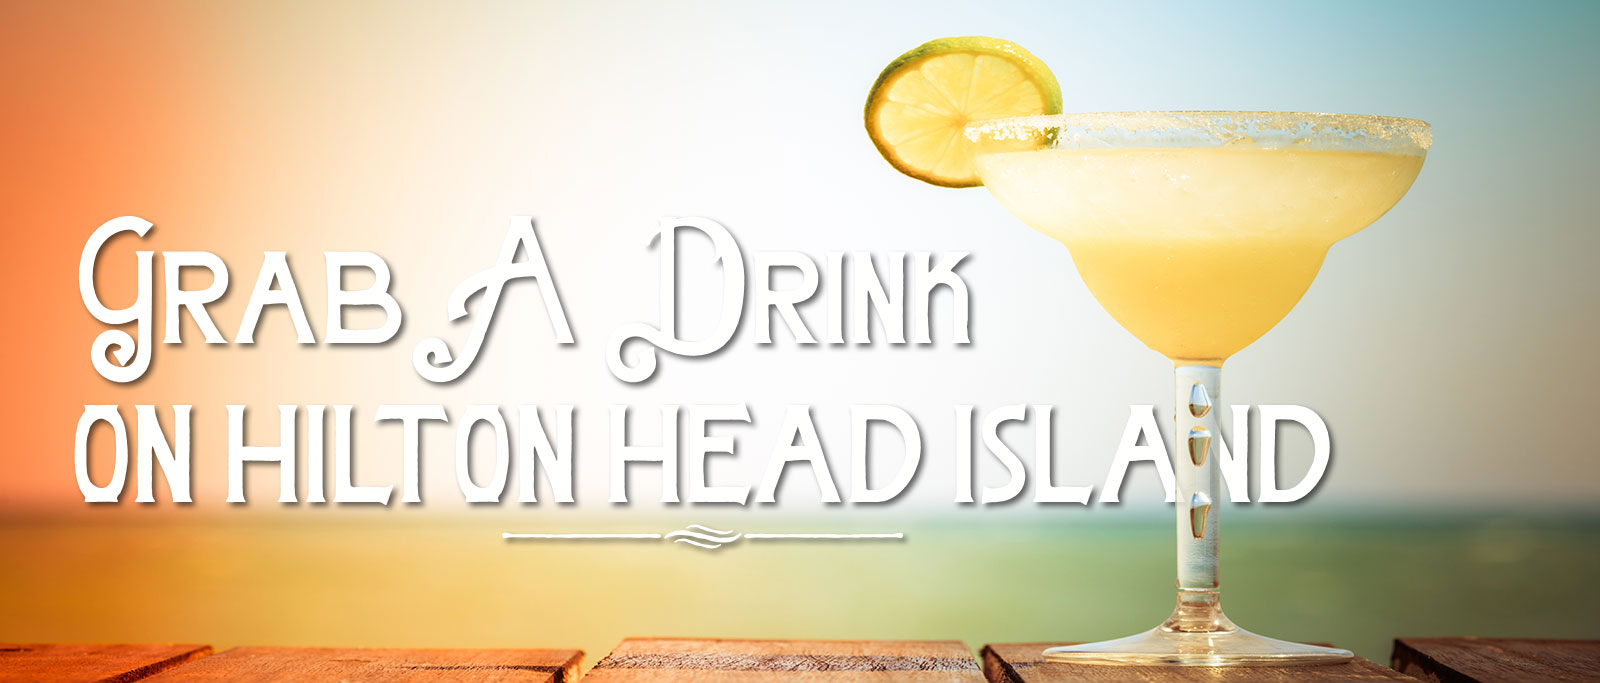 grab-a-drink-on-hilton-head-island